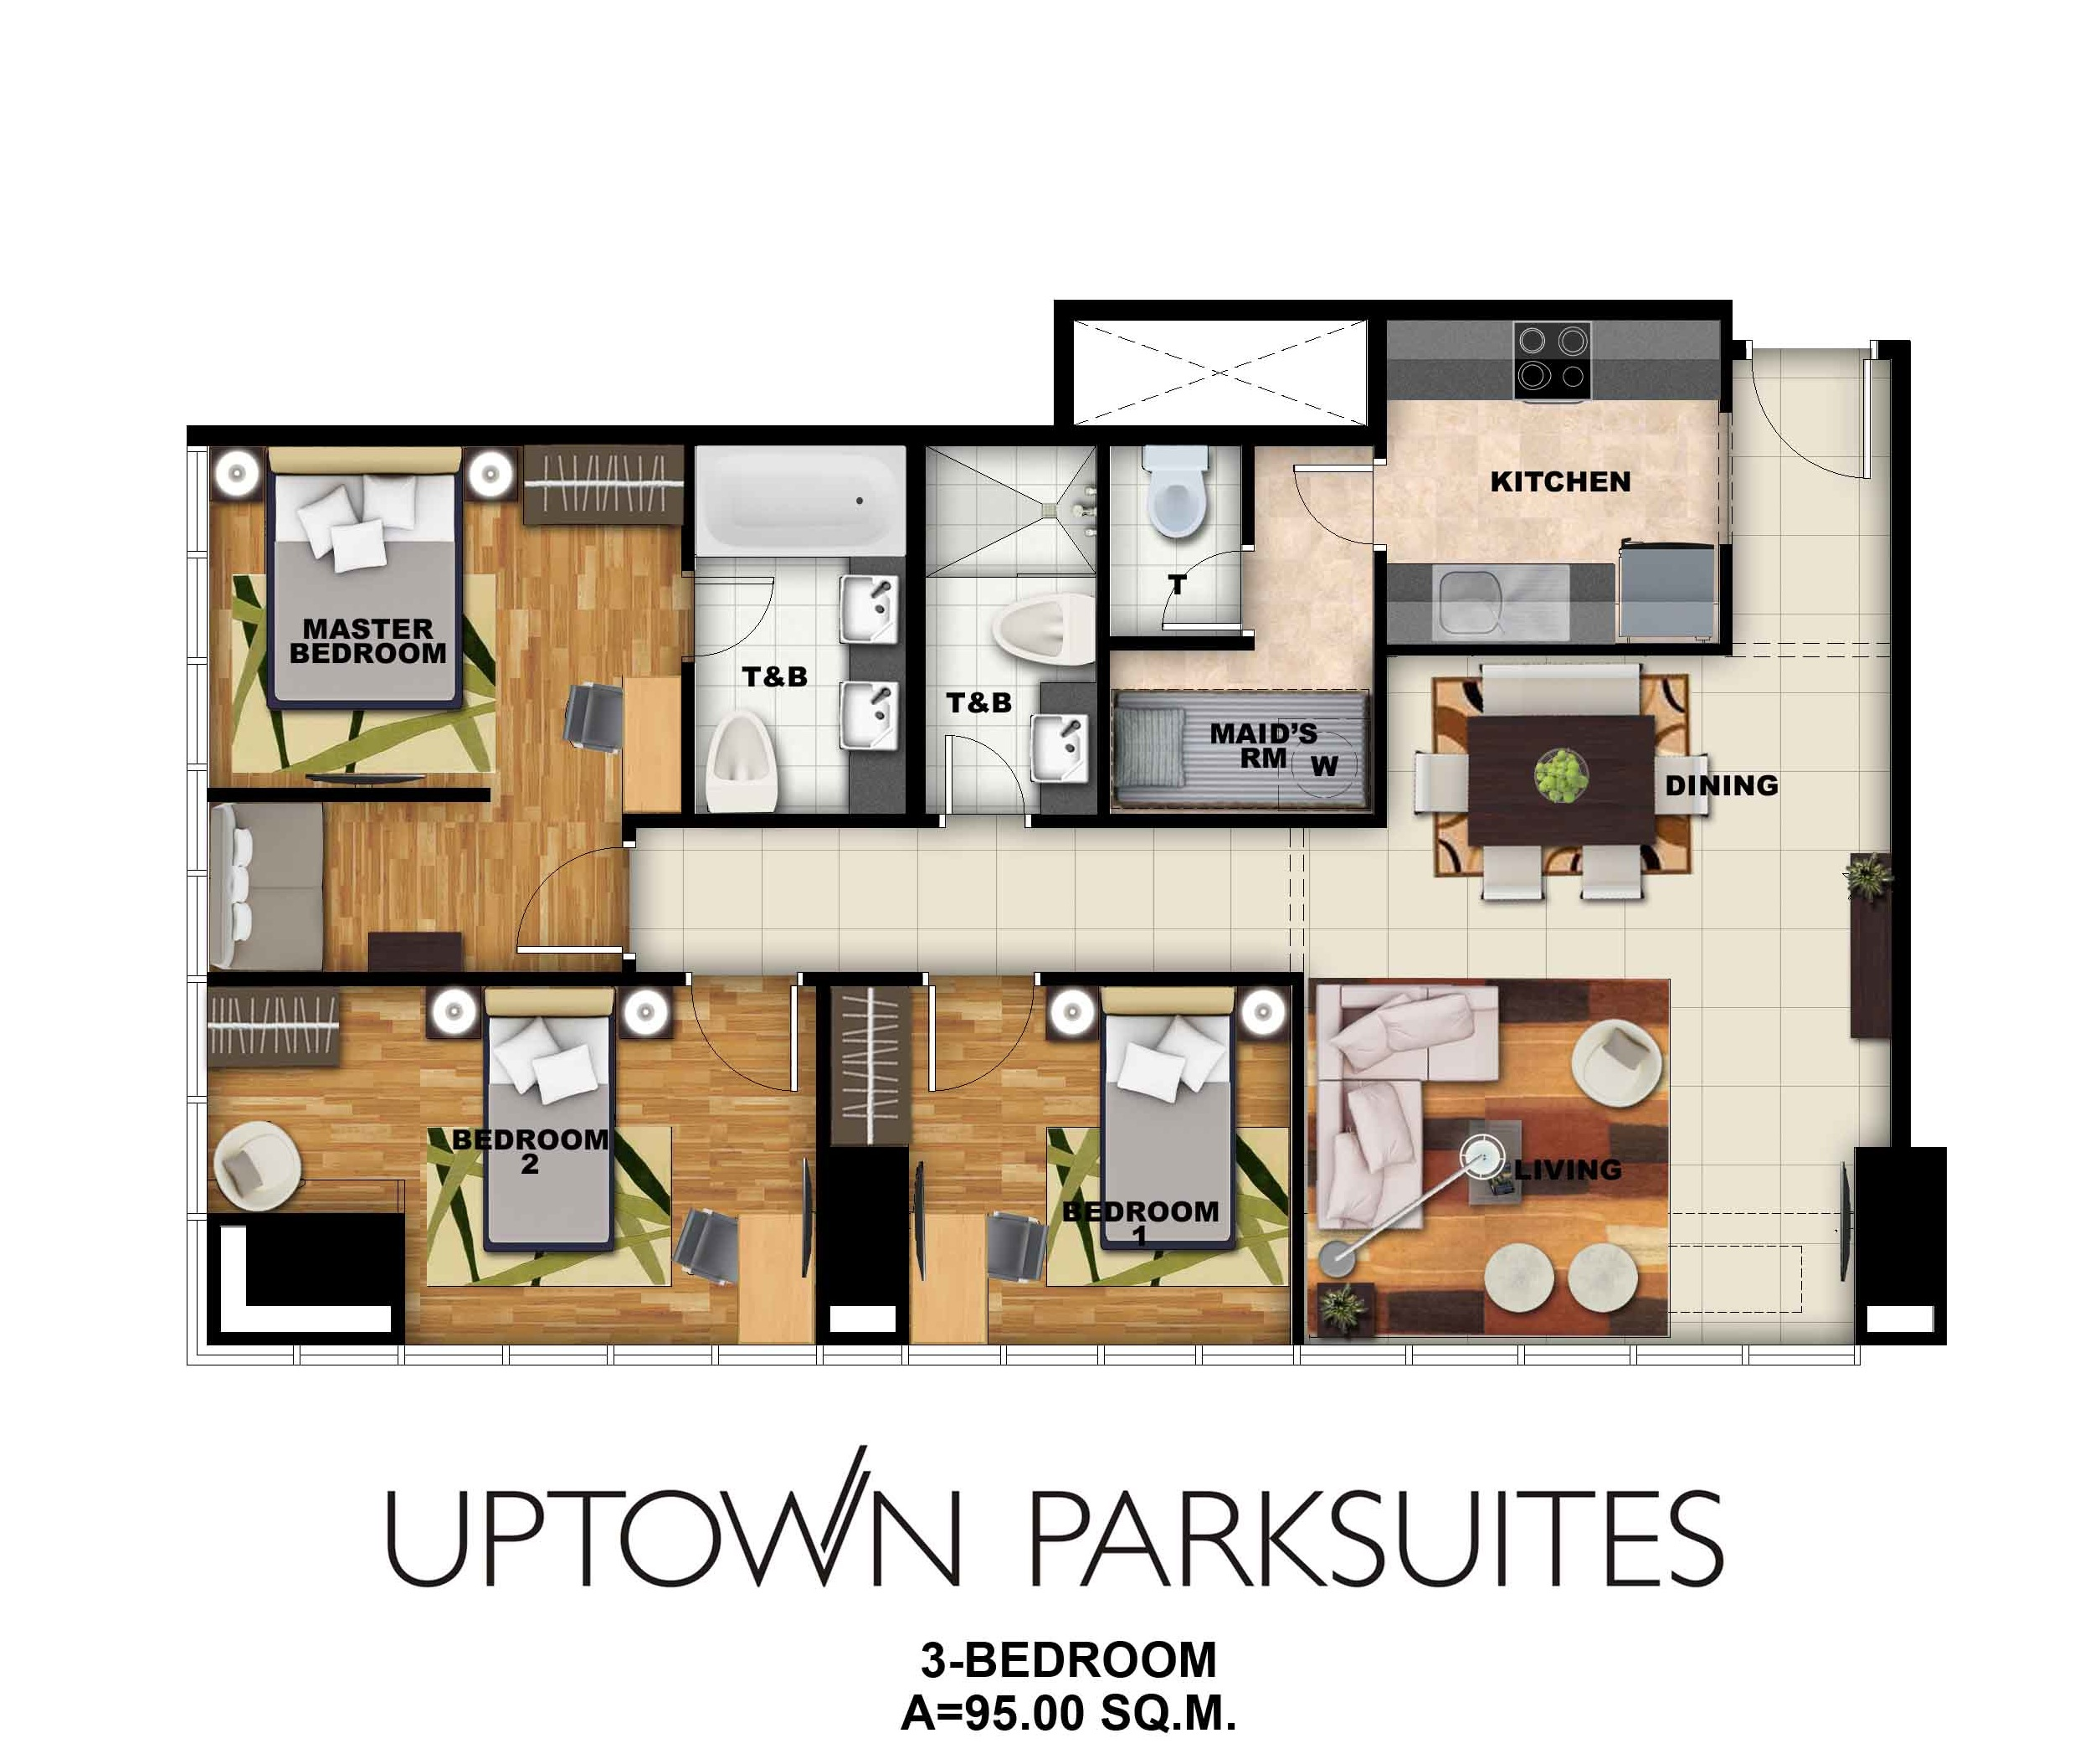 Uptown parksuites 3 bed